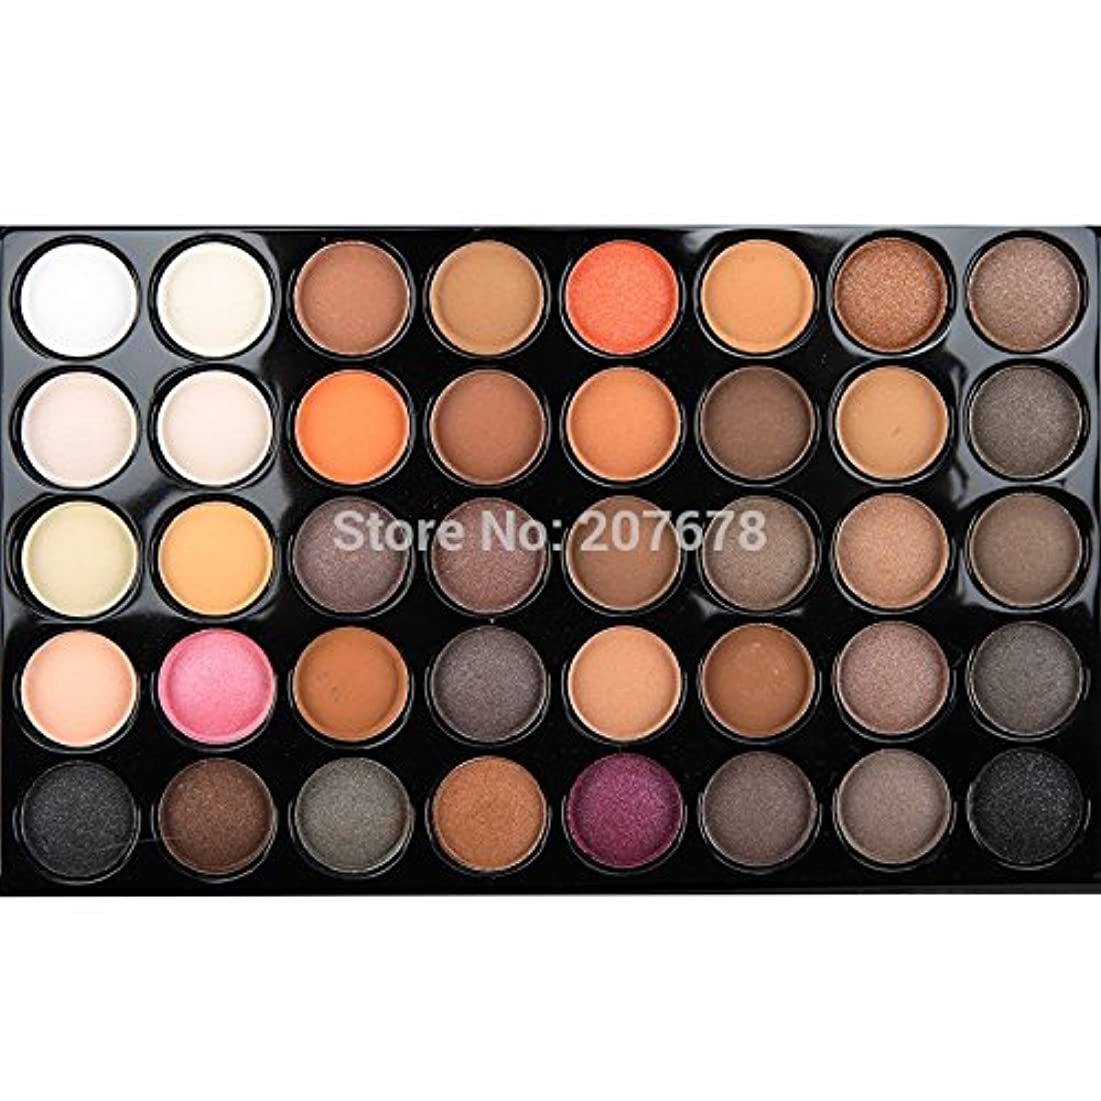 要塞飢え中毒40 Color Matte Eyeshadow Pallete Make Up Palette Eye Shadow Glitter Natural Easy to Wear Waterproof Lasting Makeup...